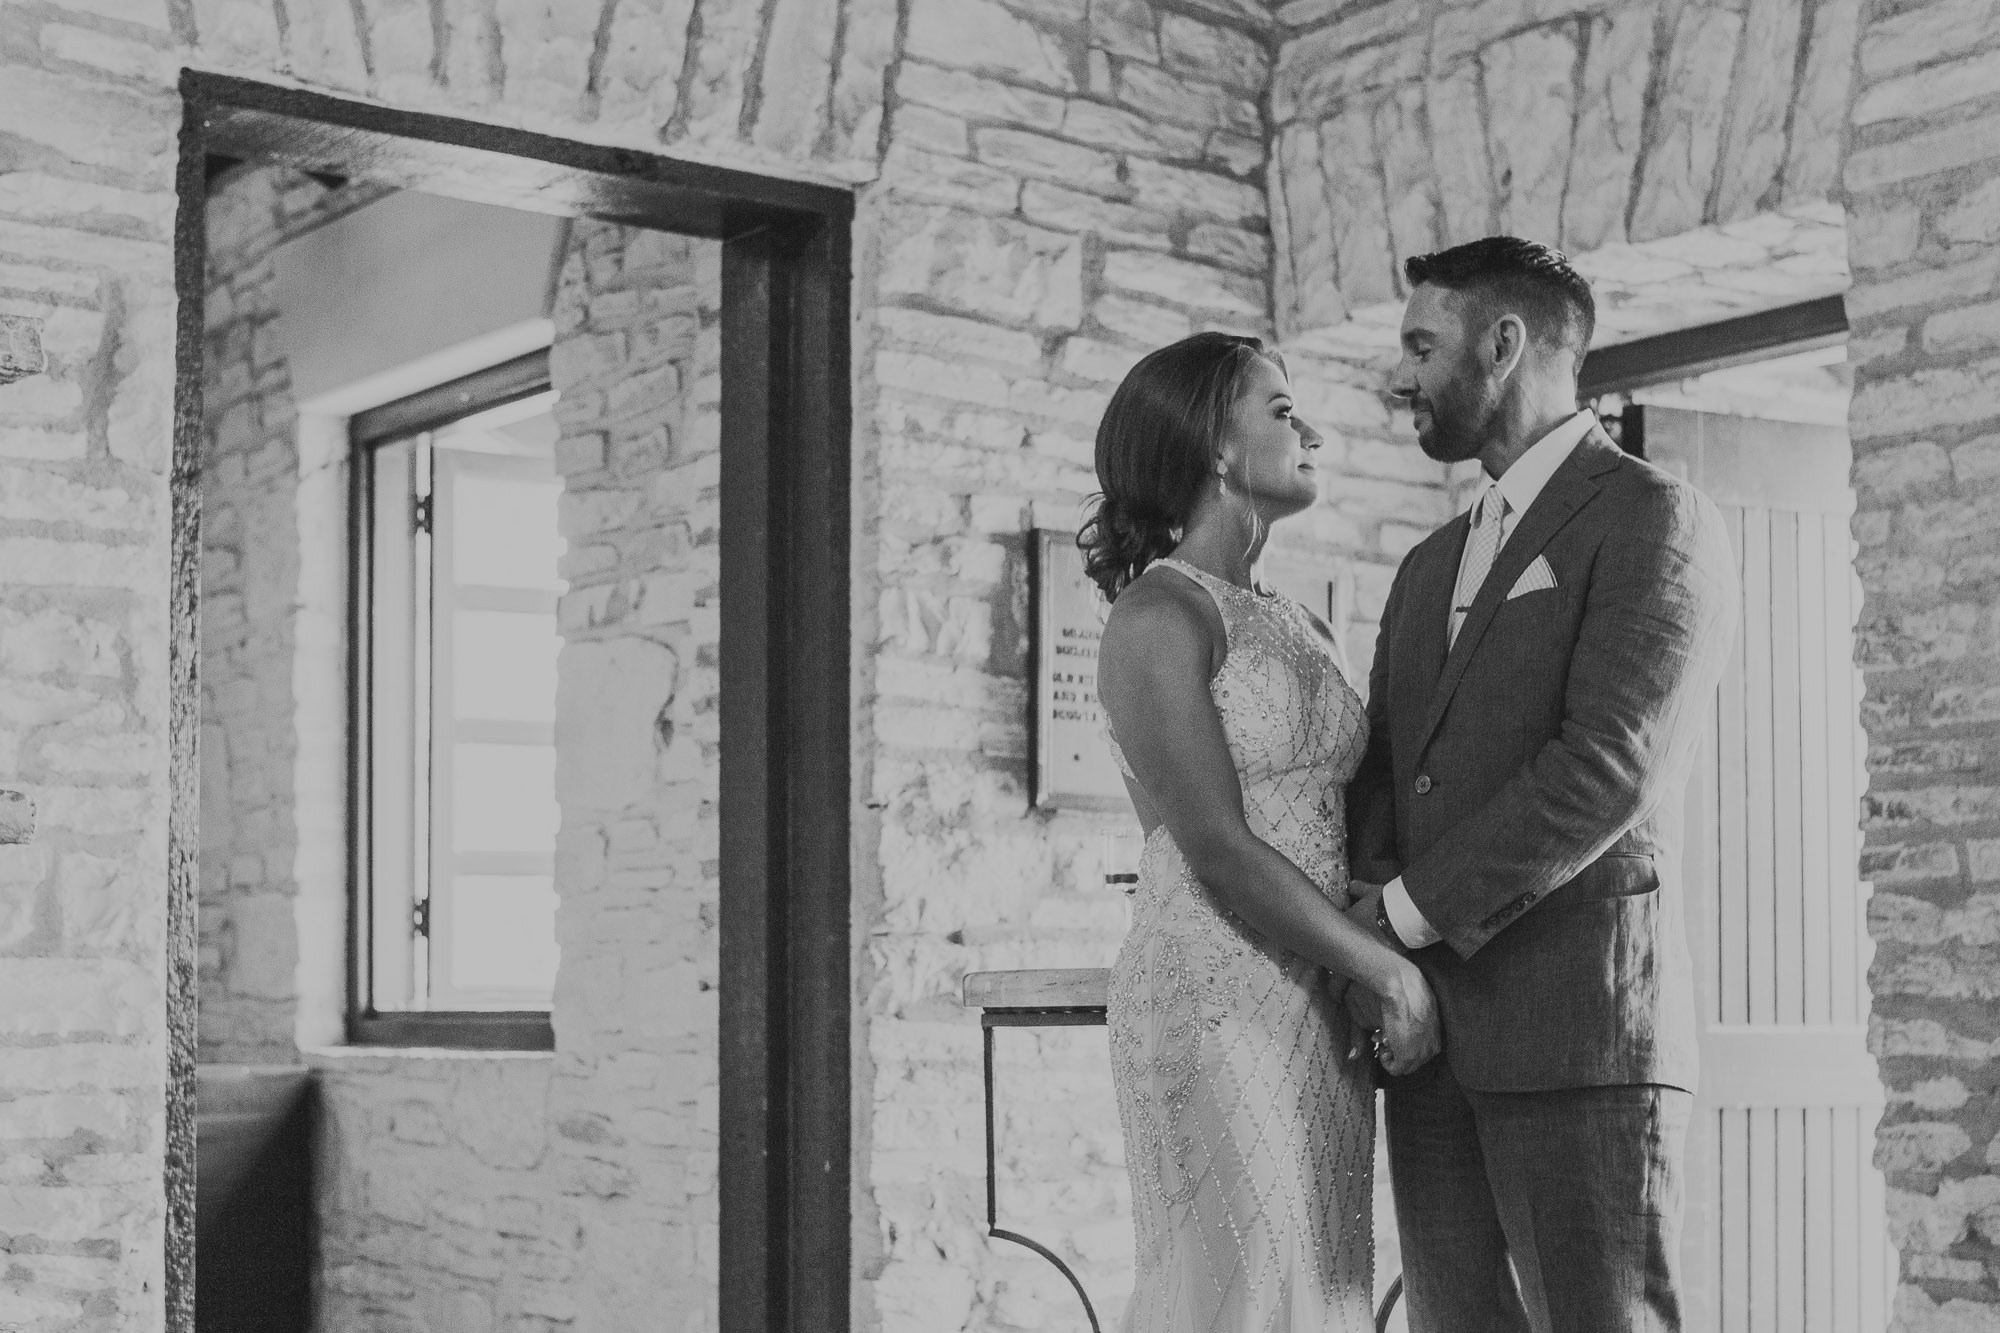 zilker park clubhouse austin texas wedding photographer portraits bride smiling admiring groom mirin happy joy pink tie blue suit dapper